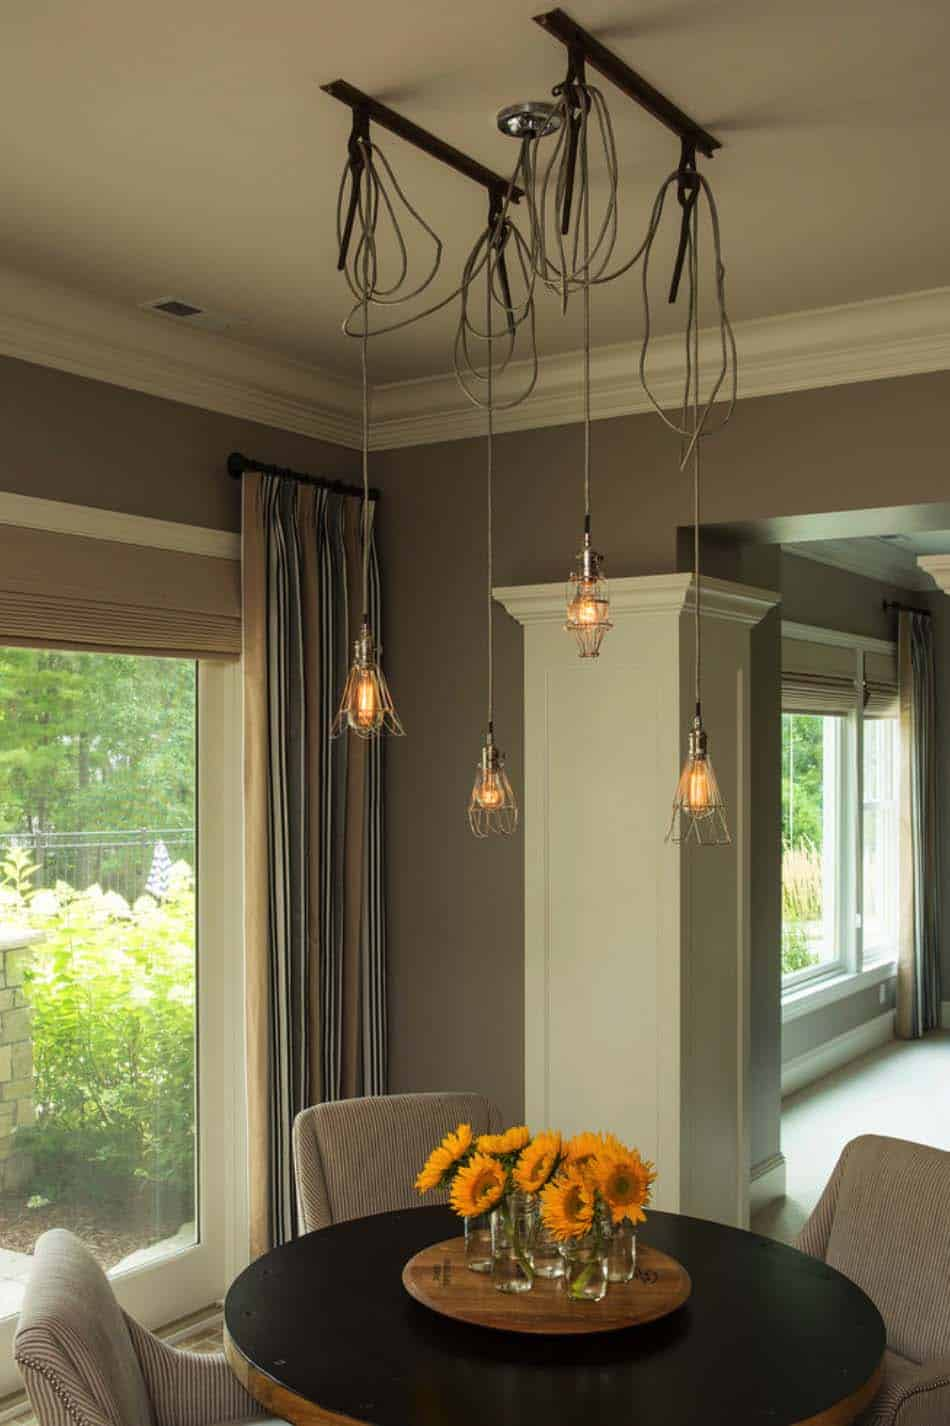 Transitional Style Home-Martha OHara Interiors-10-1 Kindesign